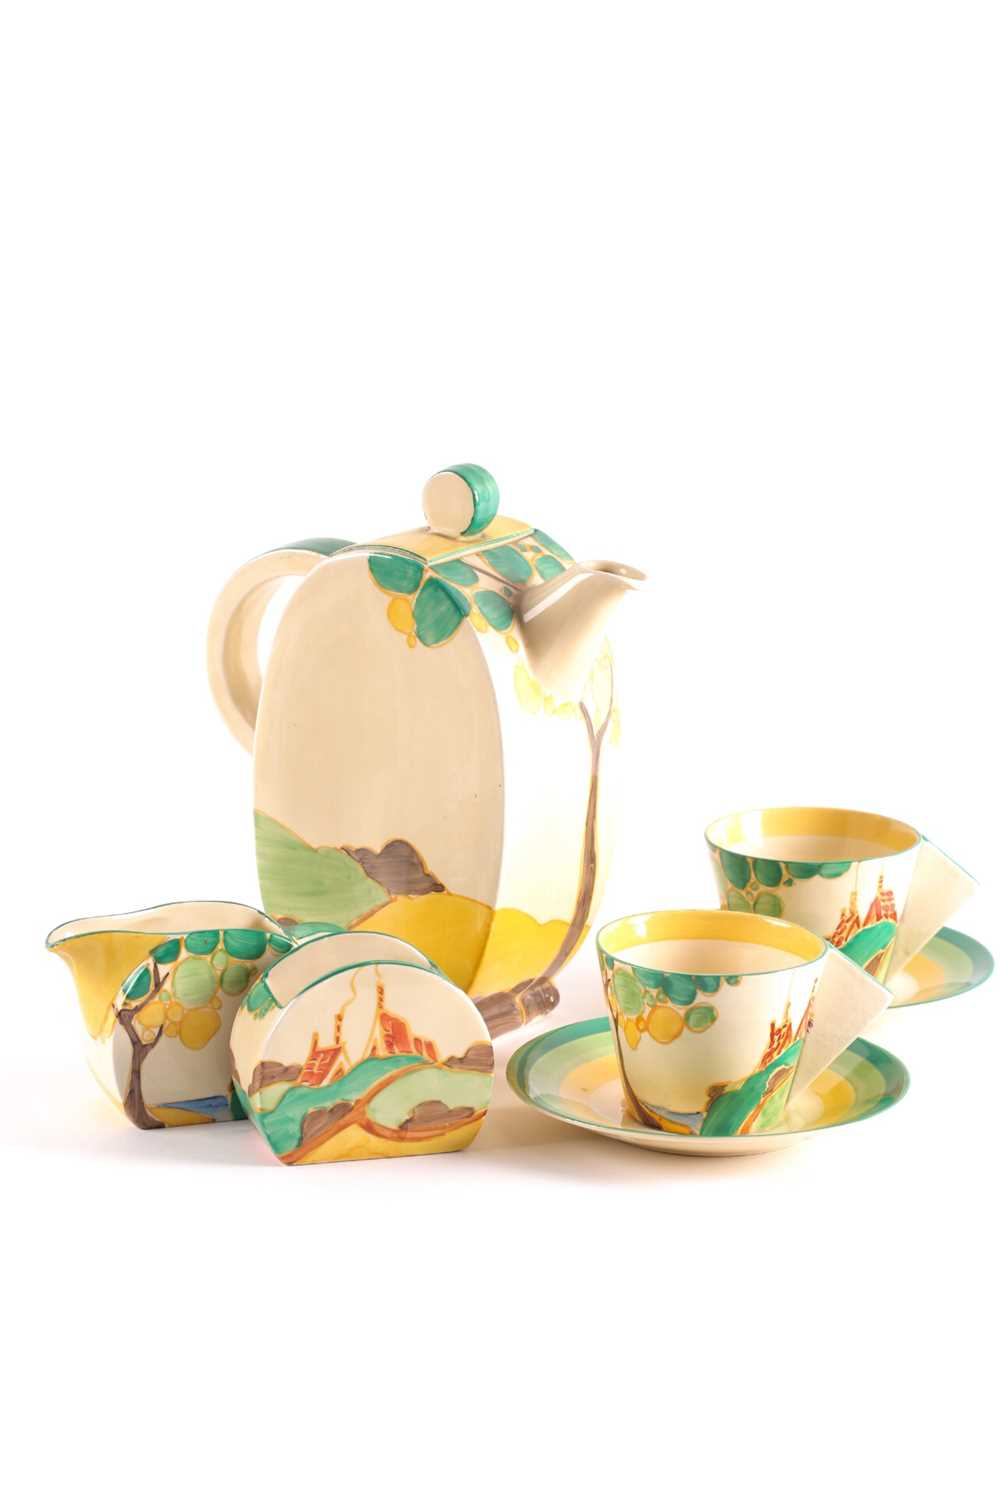 A Clarice Cliff Bon Jour coffee service, circa 1933, in the 'Secrets' pattern, comprising coffee - Image 4 of 9